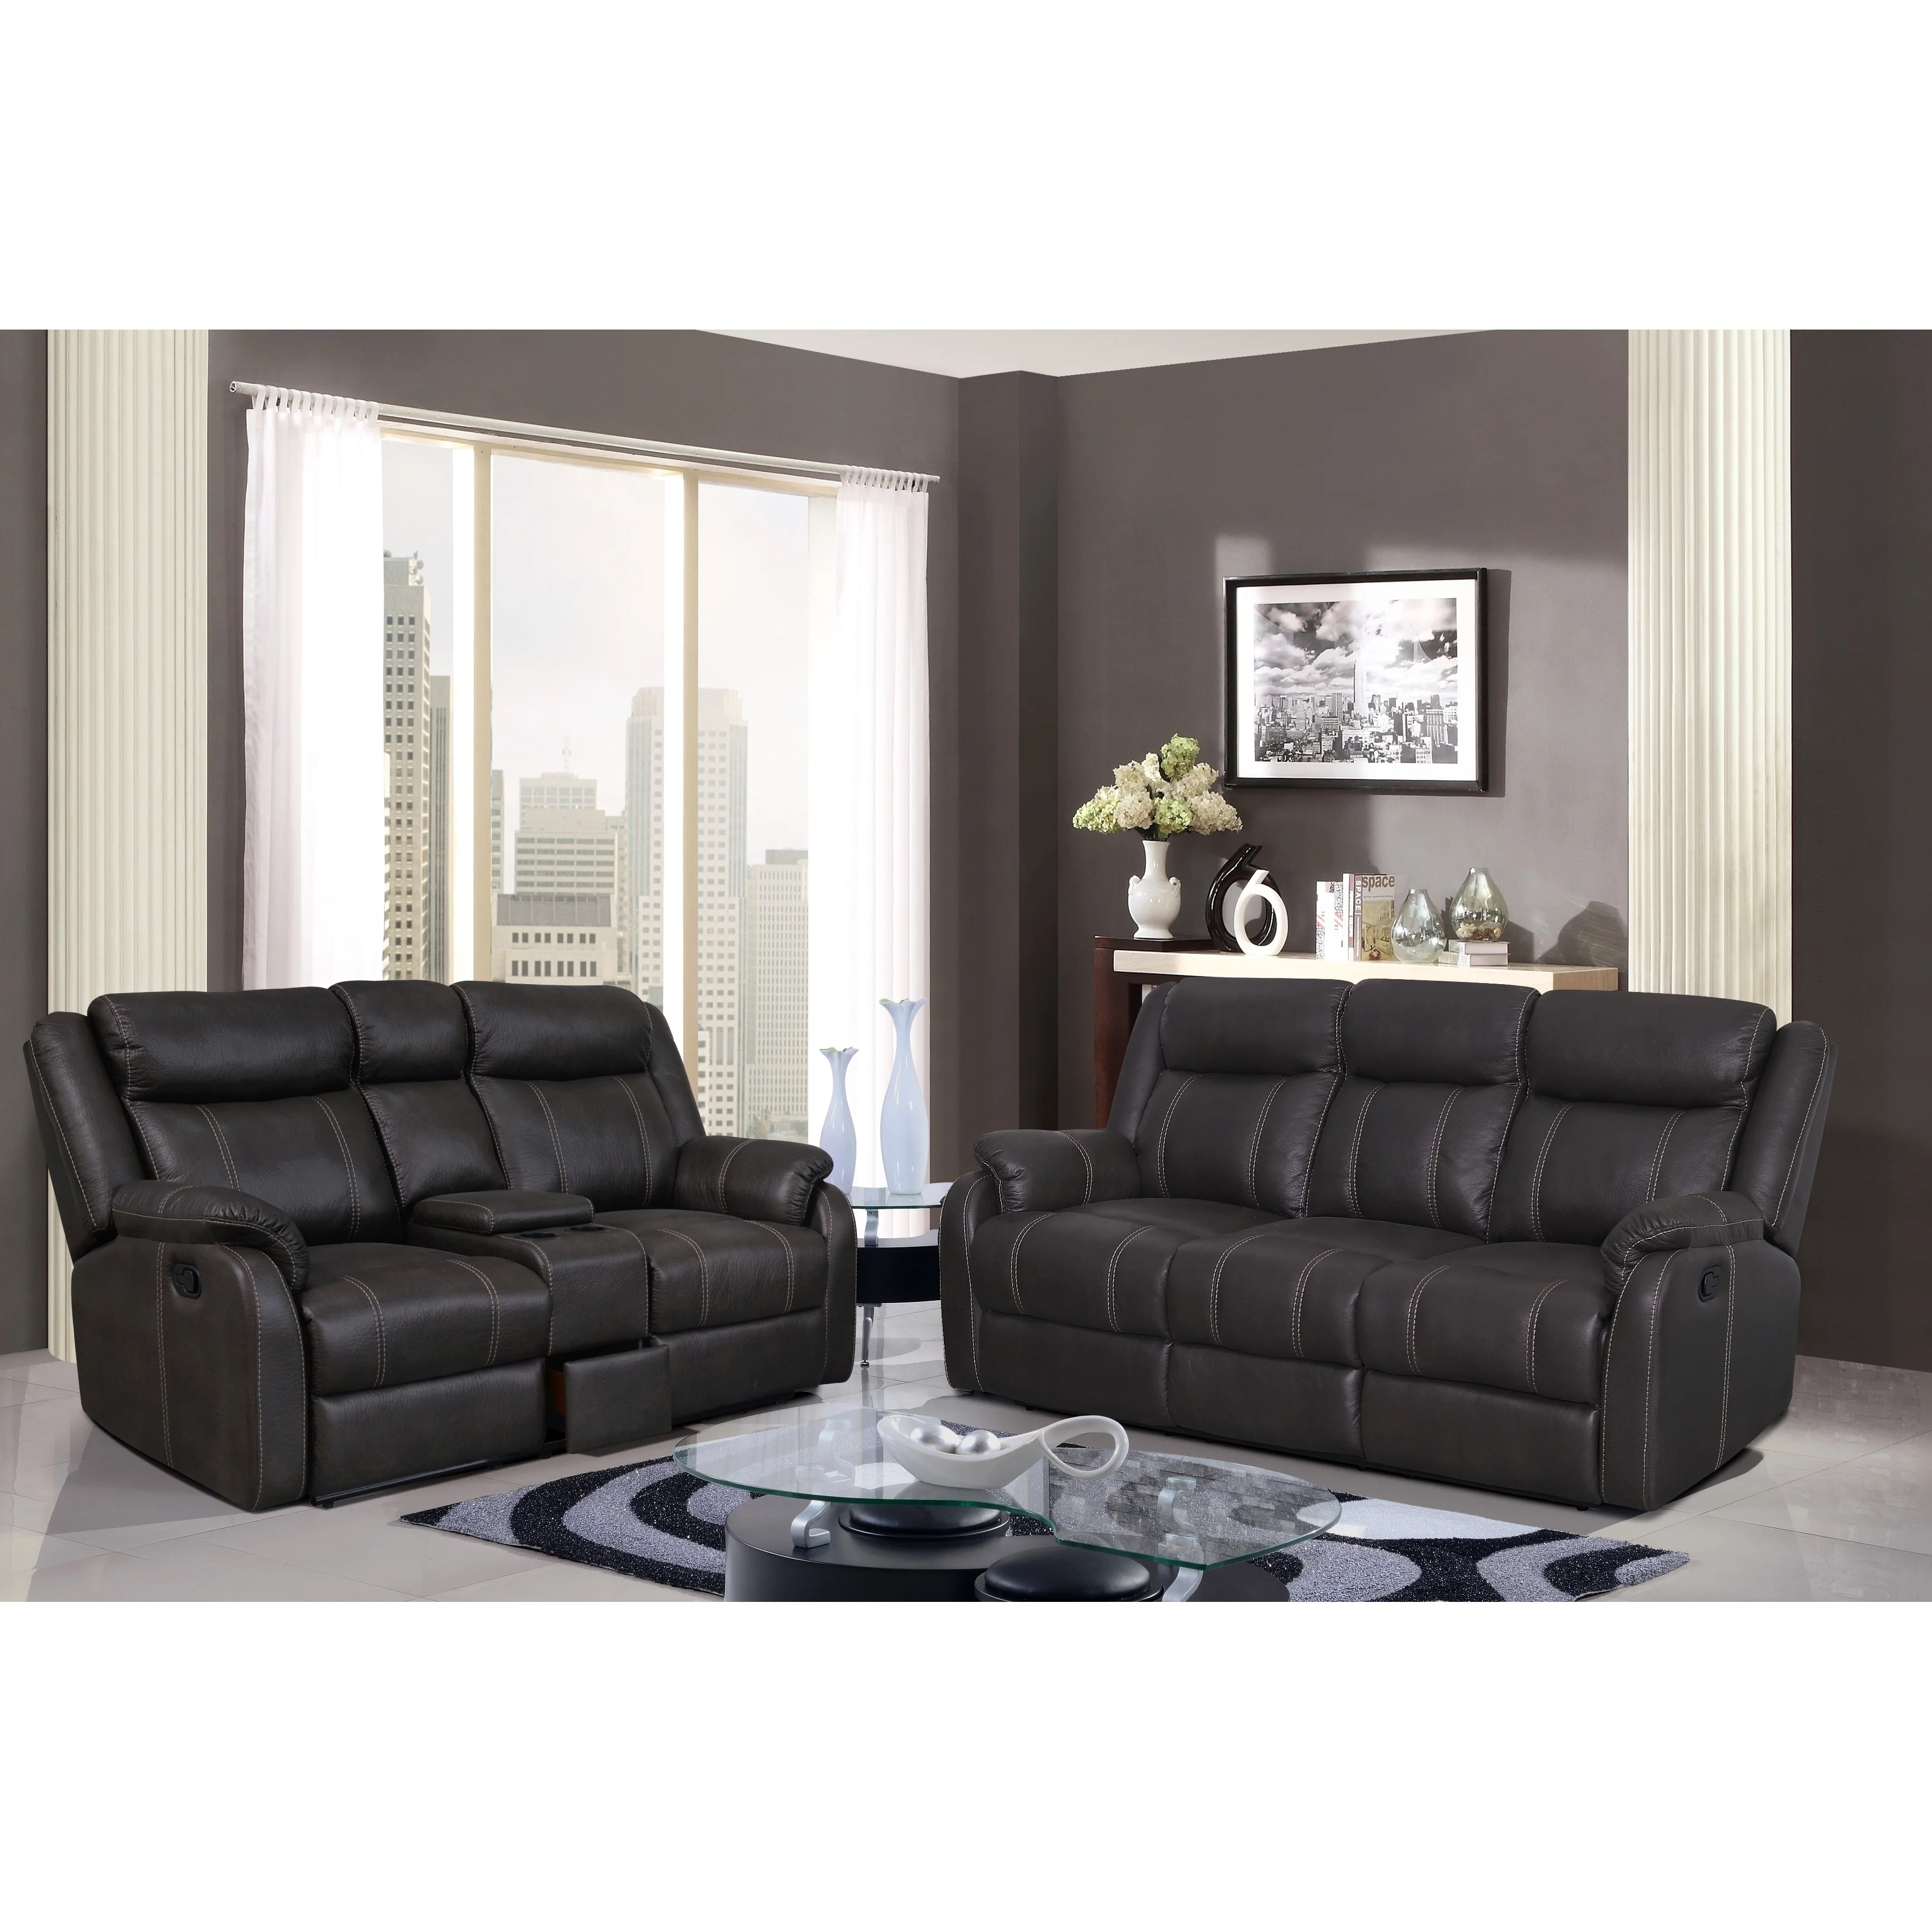 microfiber reclining sofa with drop down table wooden futon bed sydney wyatt and drawer